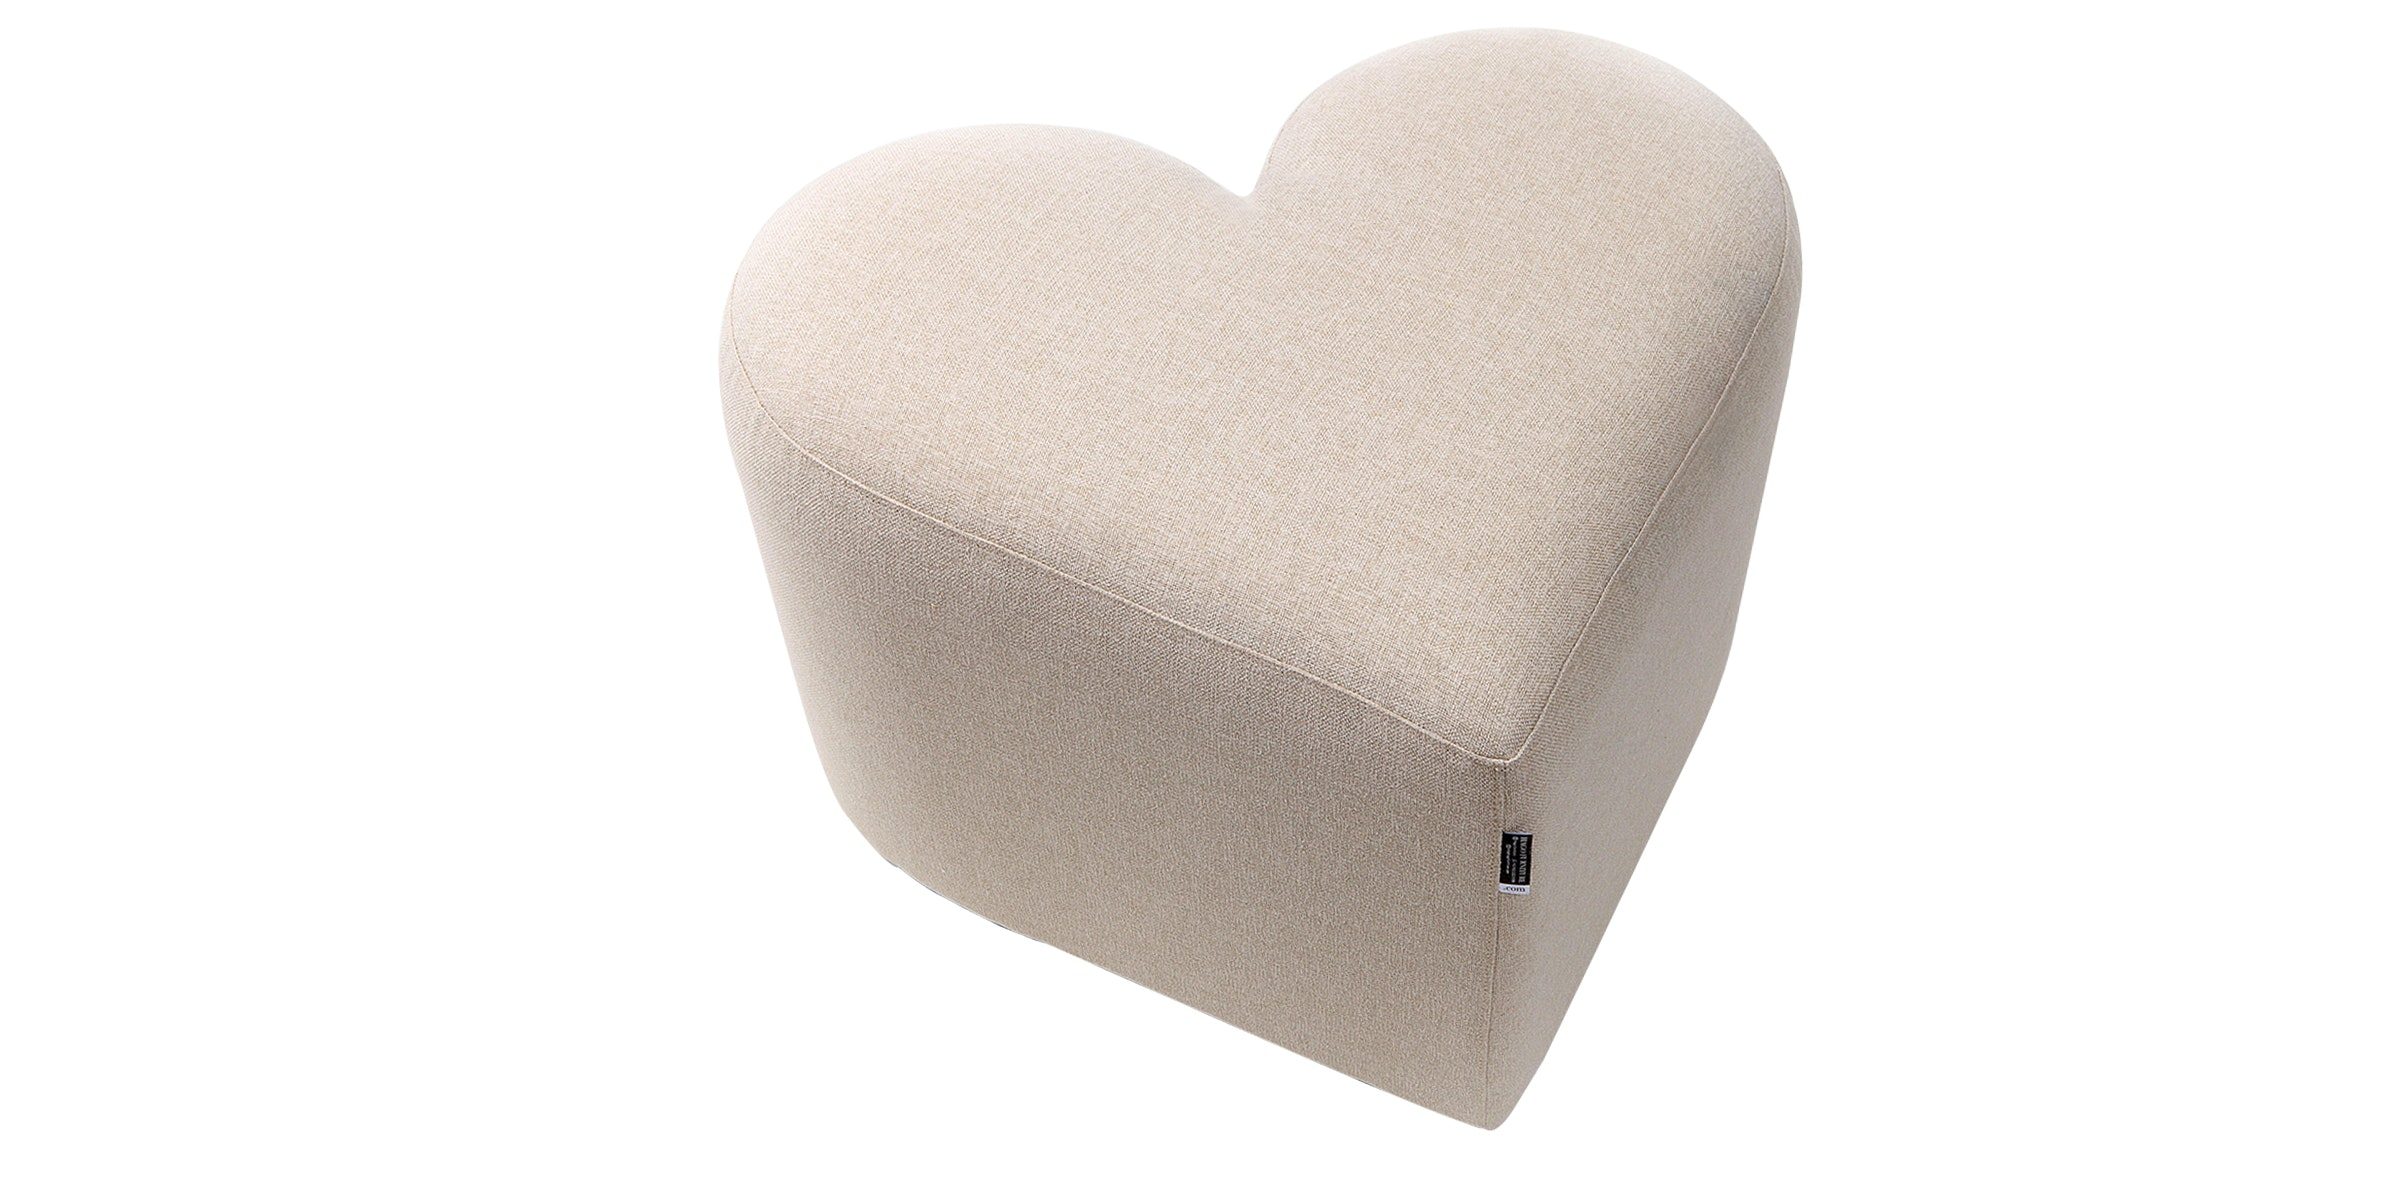 Hago Furniture Heart Unique Ottoman Krem